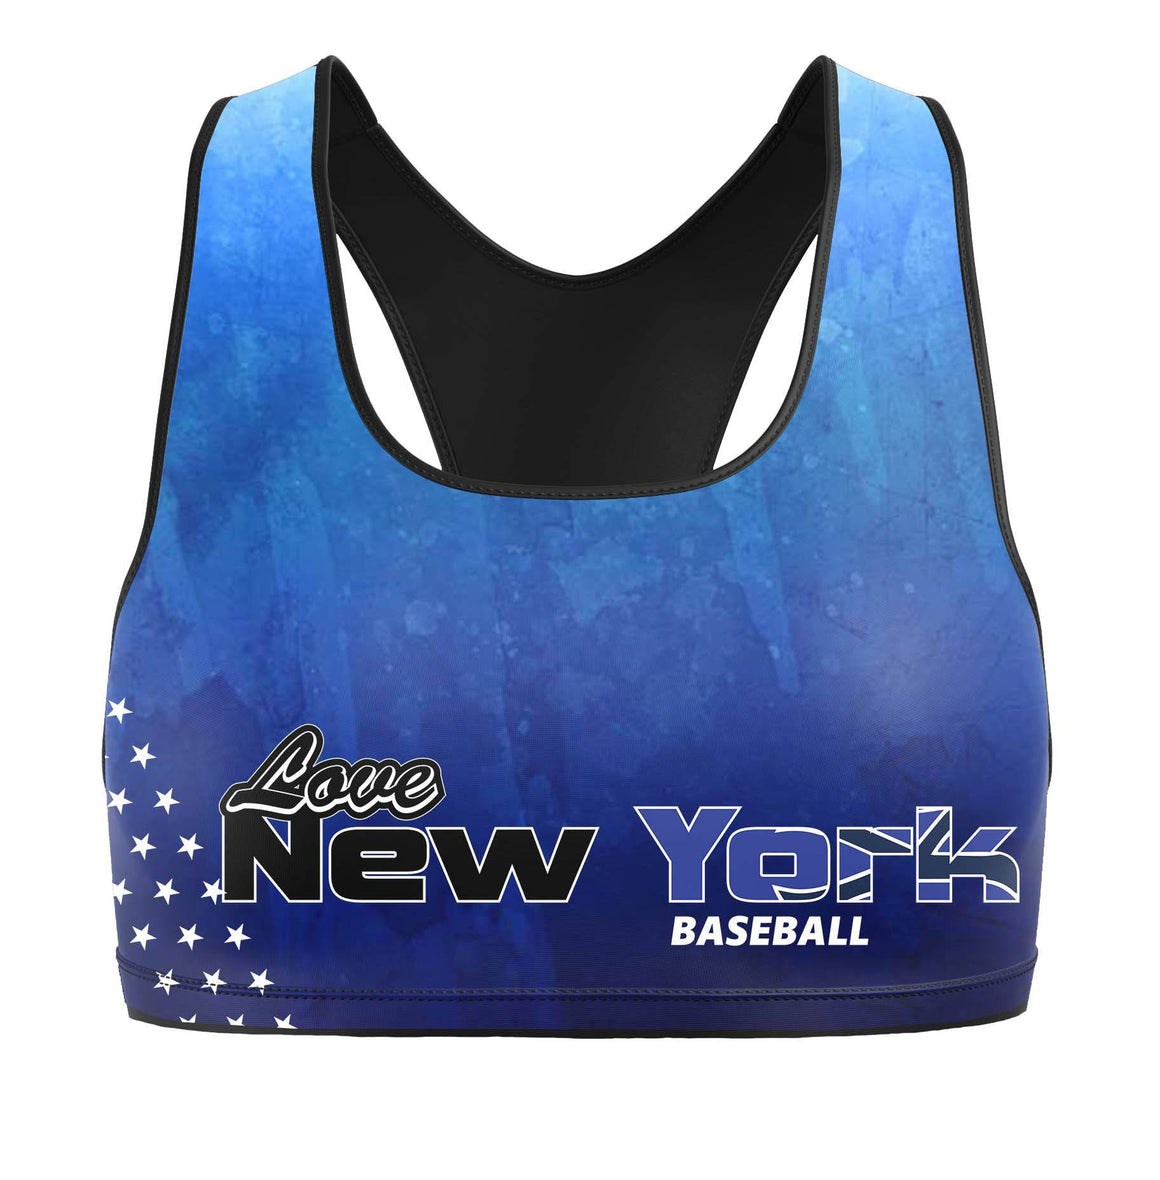 New York Yanks Premium Sports Bra